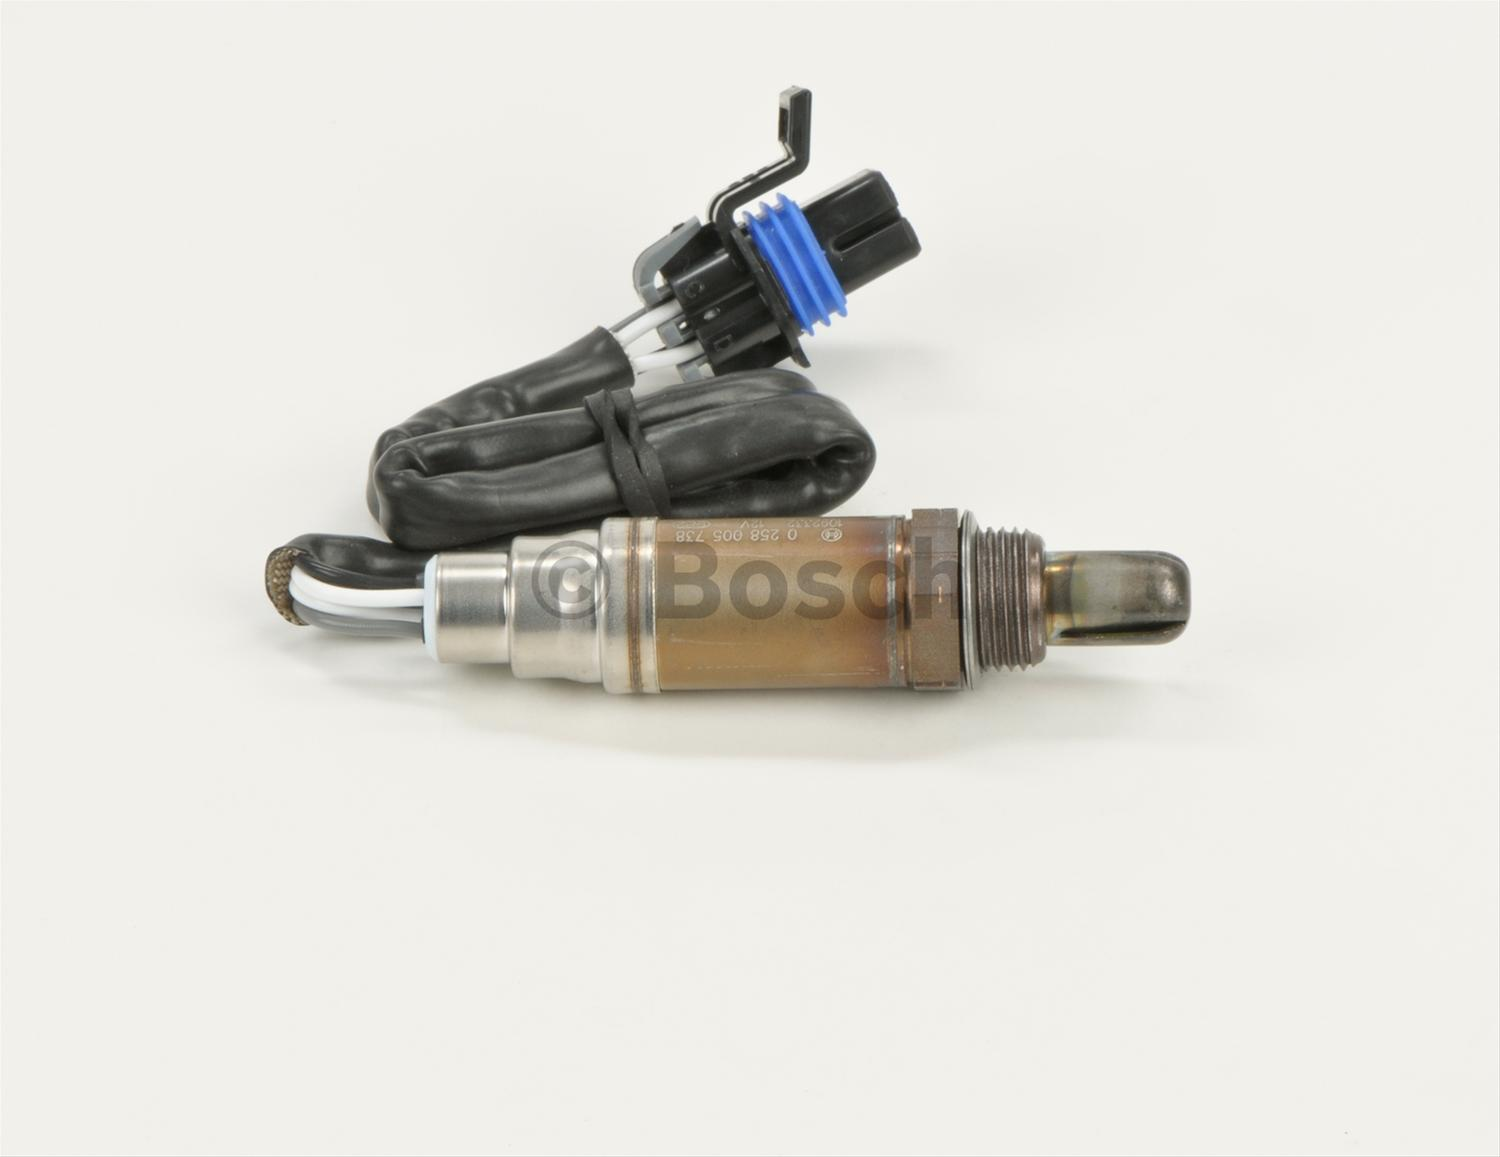 Bosch Premium Original Equipment Type Oxygen Sensors 13444 Free 1999 Katana Wiring Diagram Shipping On Orders Over 49 At Summit Racing